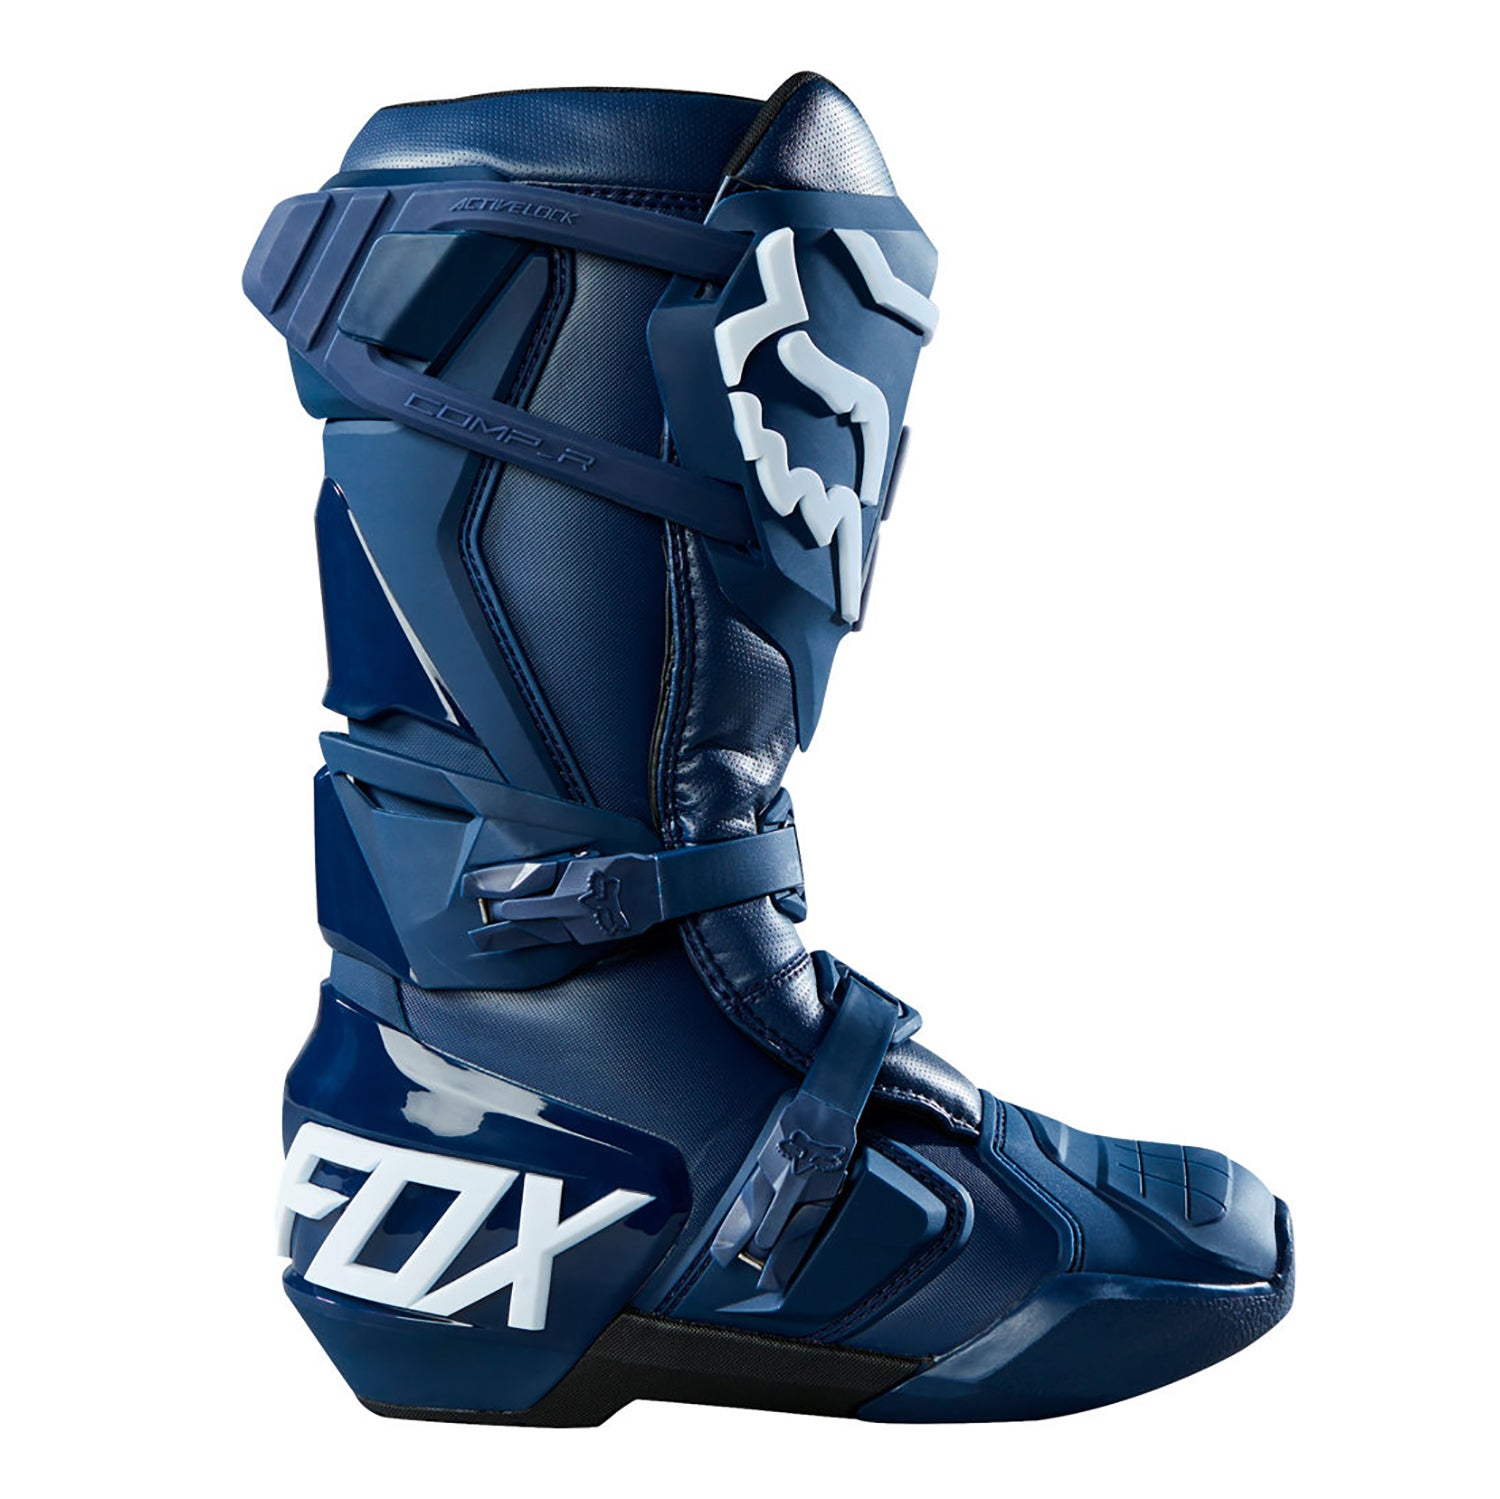 Fox Racing Comp R Idol Motocross Boots from Dirtbikebitz